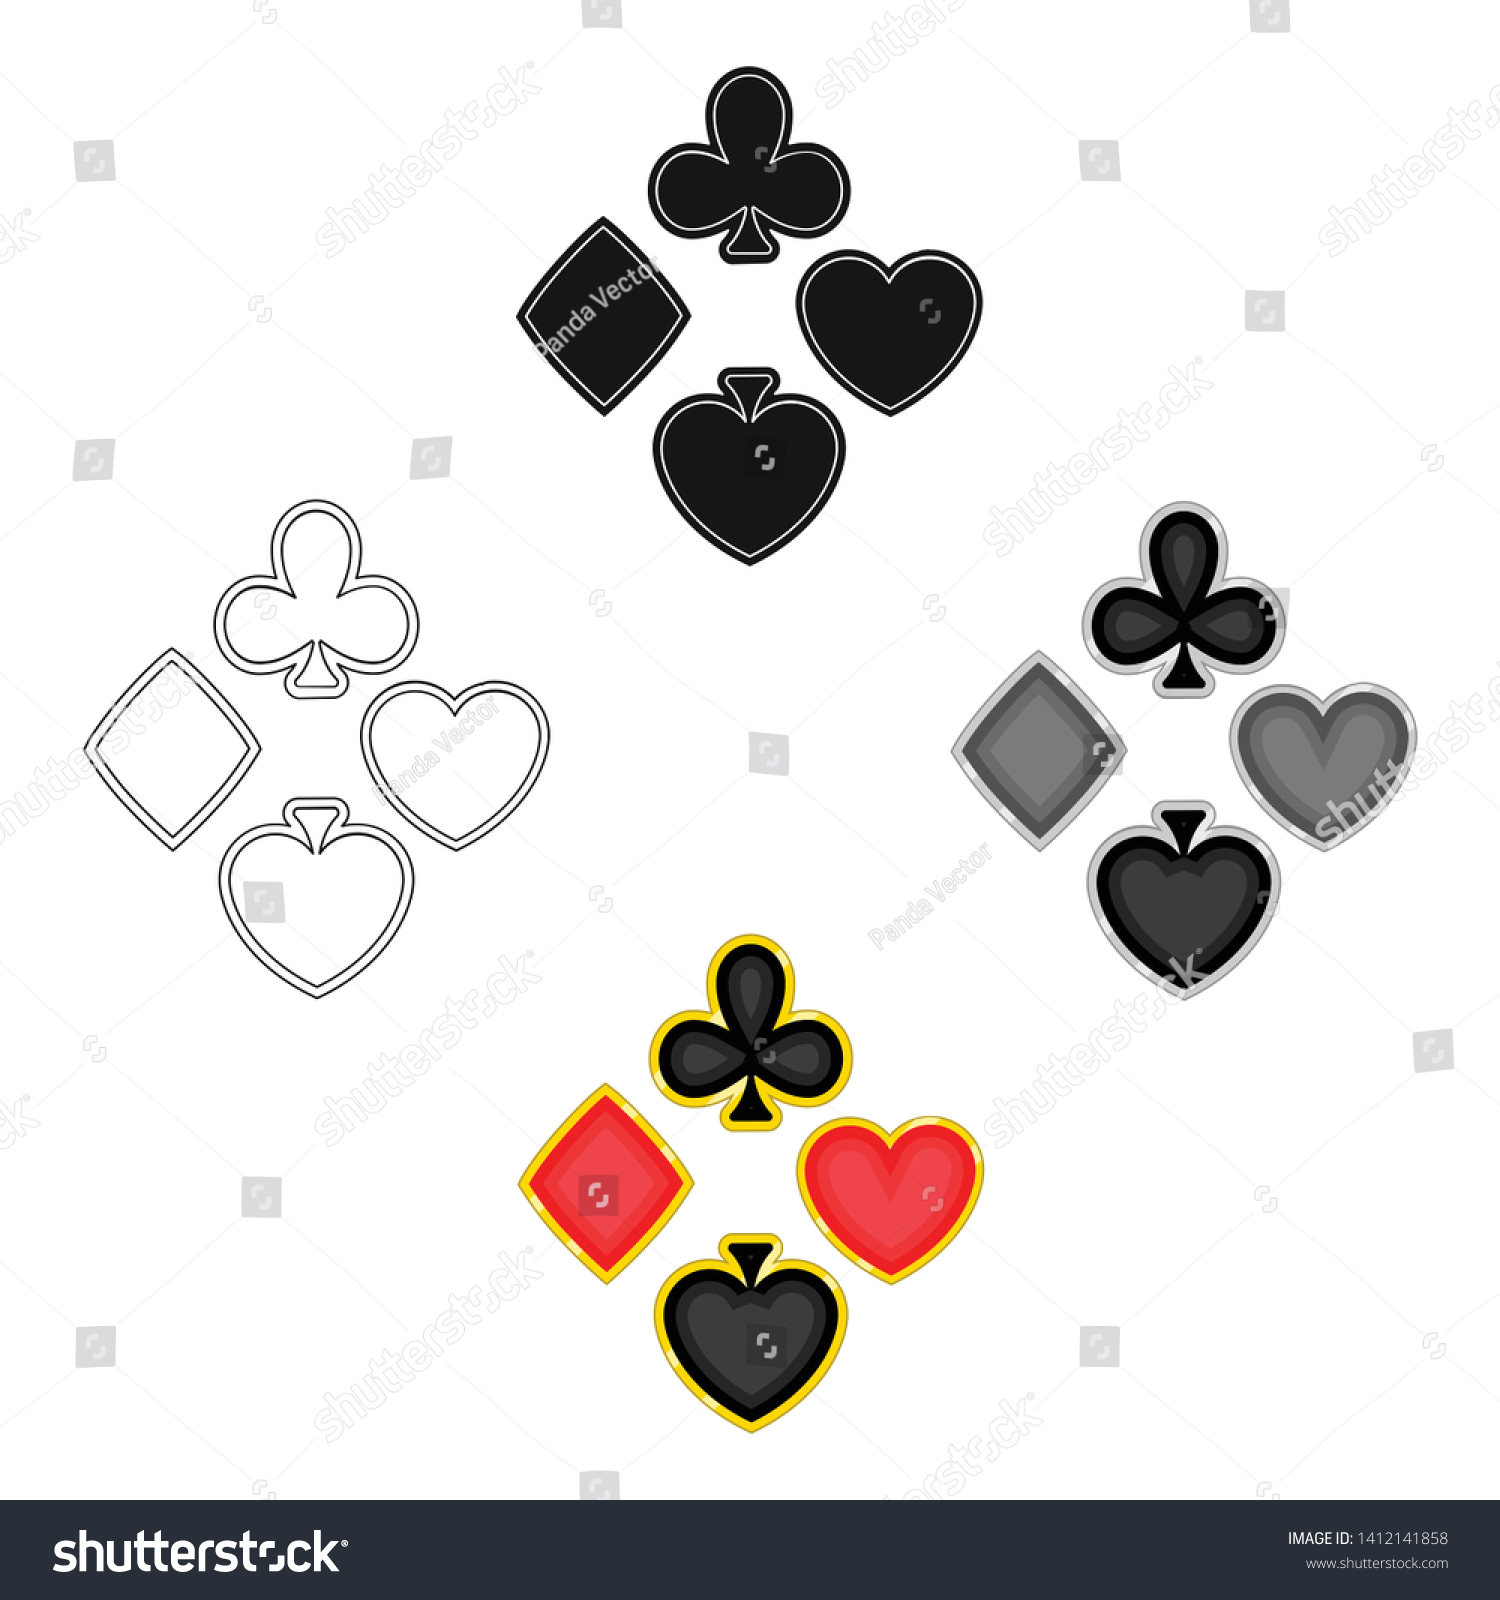 maps single icon cartoonblack stylemaps vector stock vector royalty free 1412141858 shutterstock